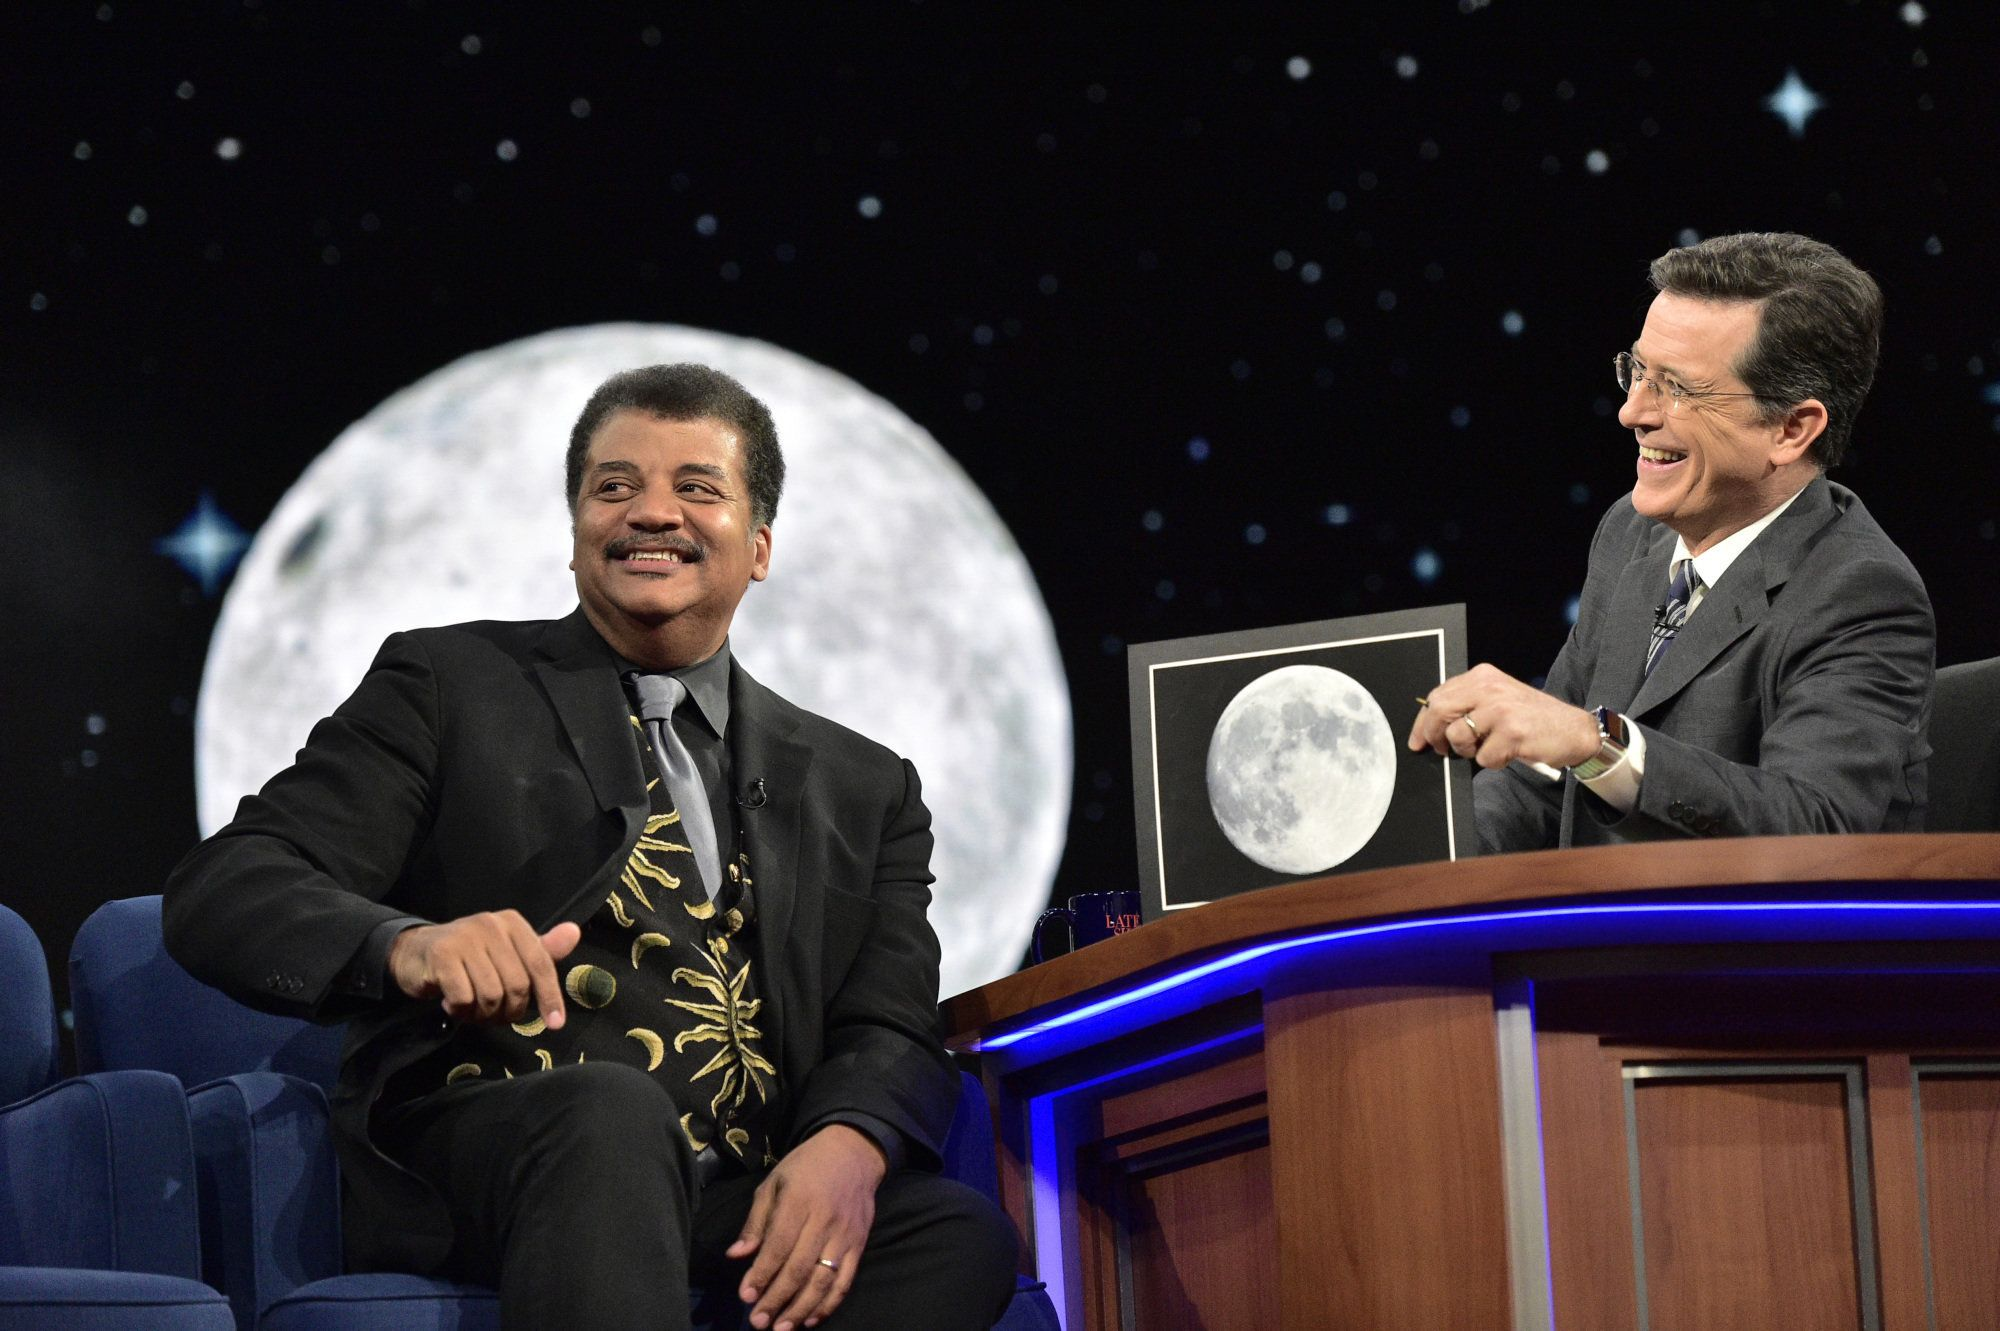 NEW YORK - JUNE 22: The Late Show With Stephen Colbert: For the 6/22/2016 broadcast  Neil Degrasse Tyson, explains to host Stephen Colbert 'The woman in the moon' during Wednesday's taping in New York.  (Photo by John Paul Filo/CBS via Getty Images)